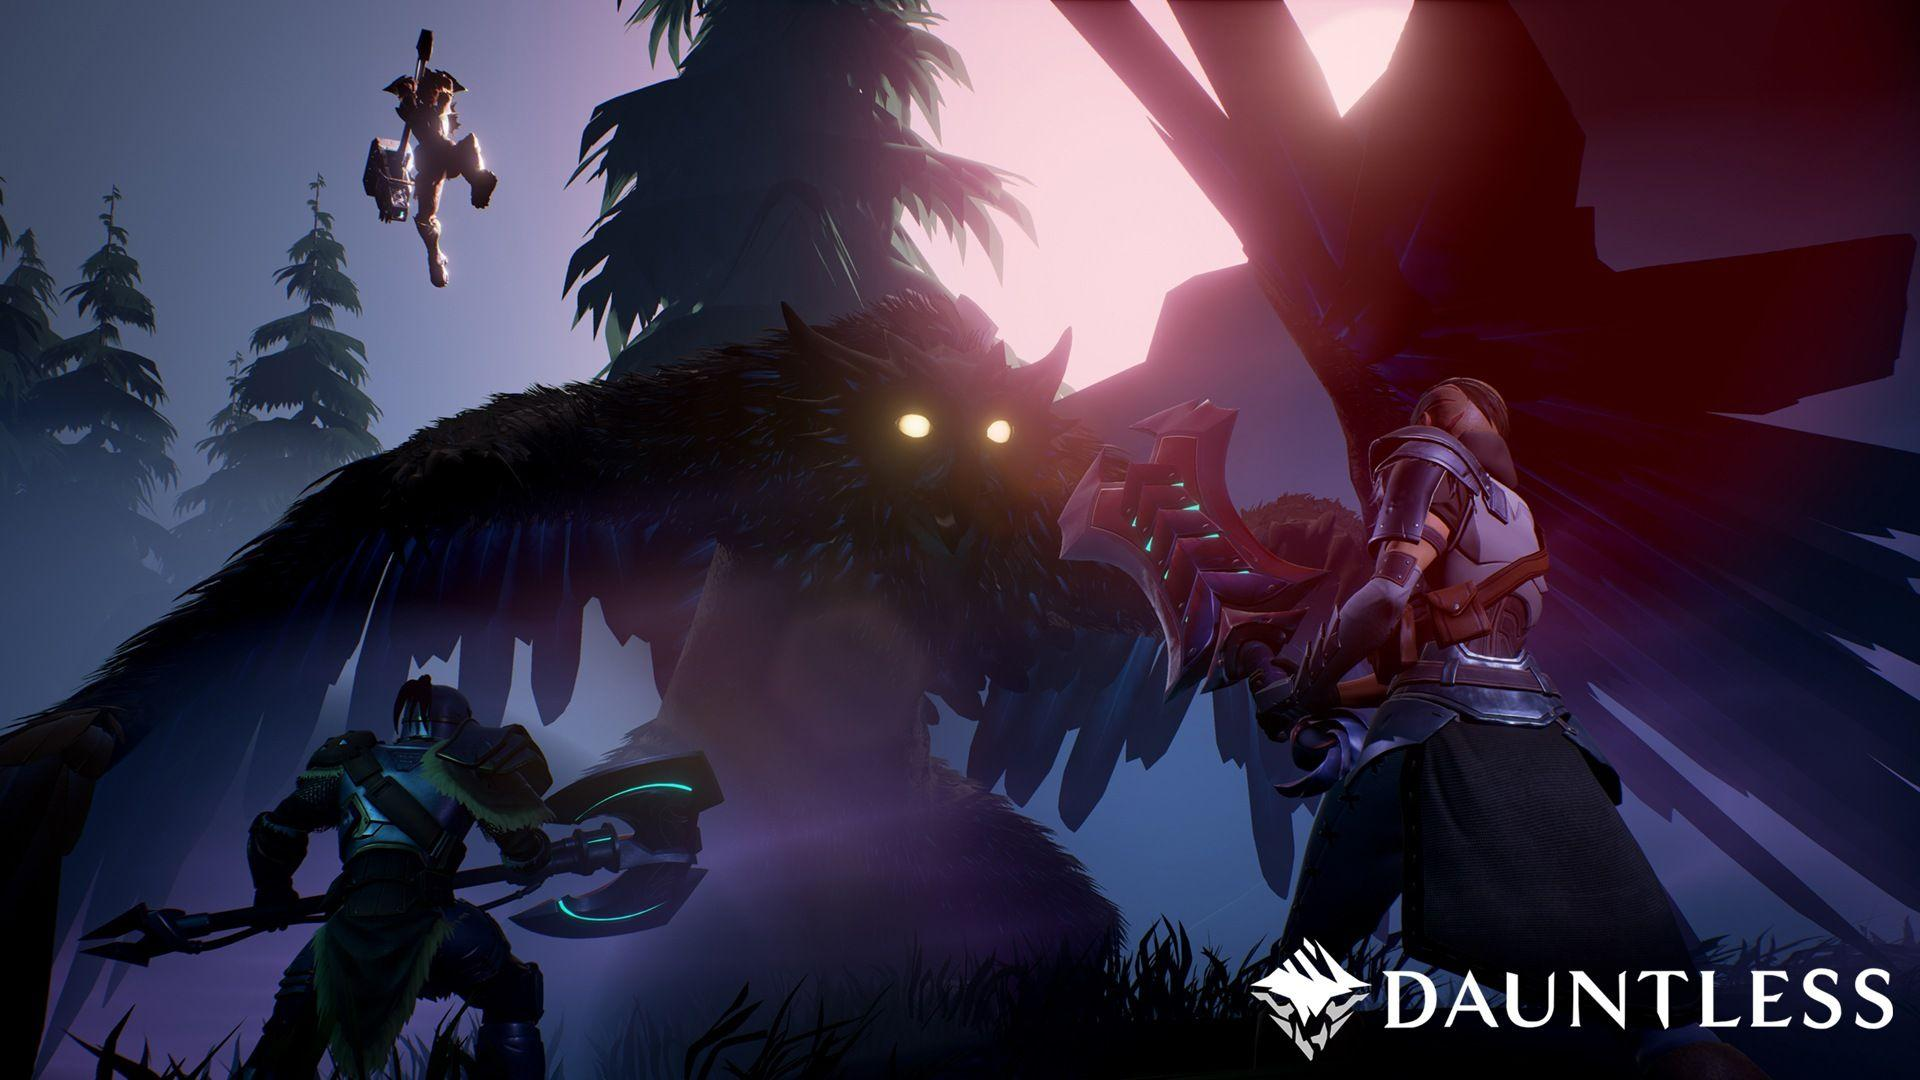 Dauntless Wallpapers - Wallpaper Cave